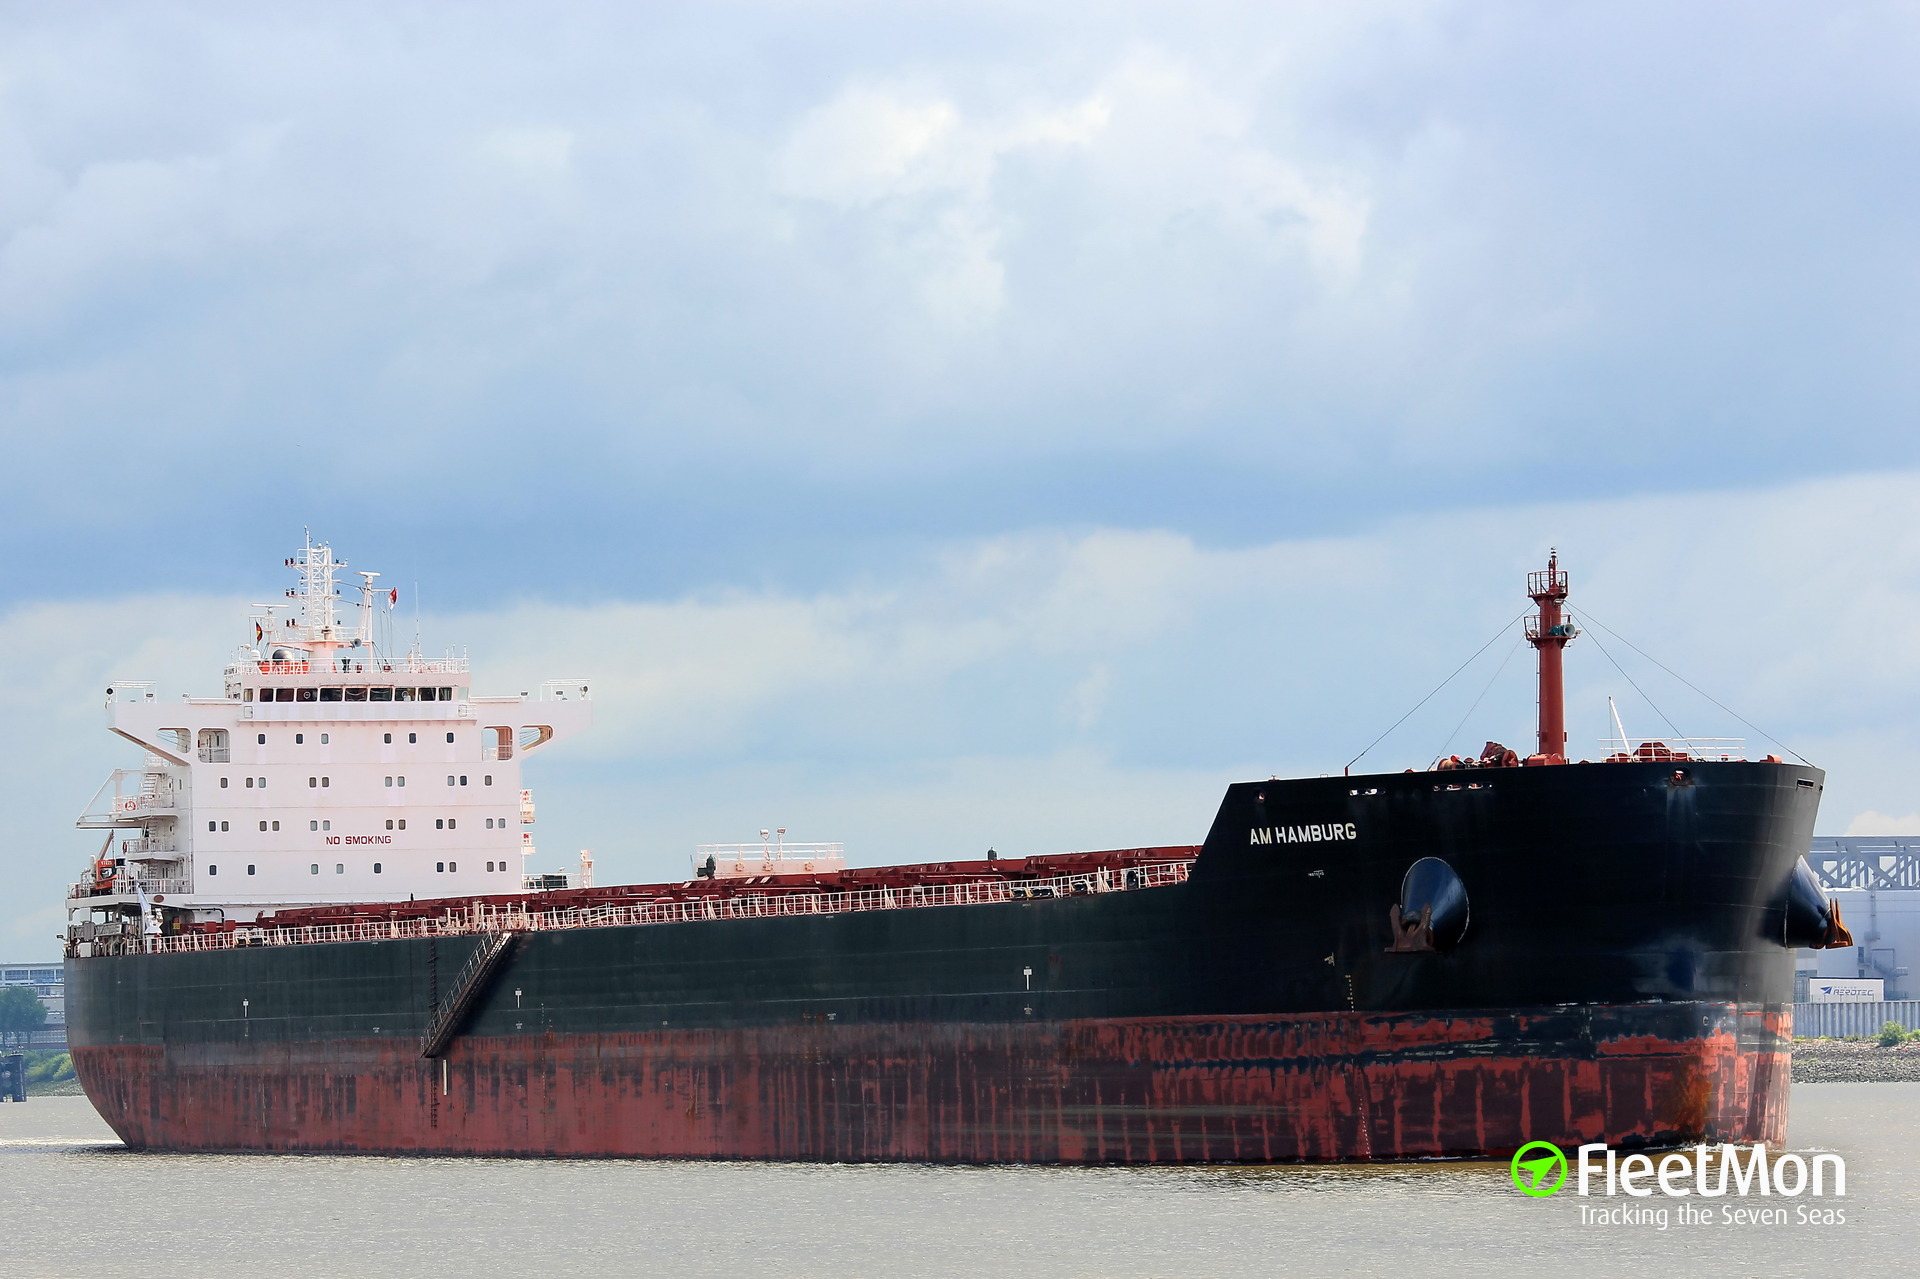 Bulk carrier AM Hamburg grounding, Terneuzen